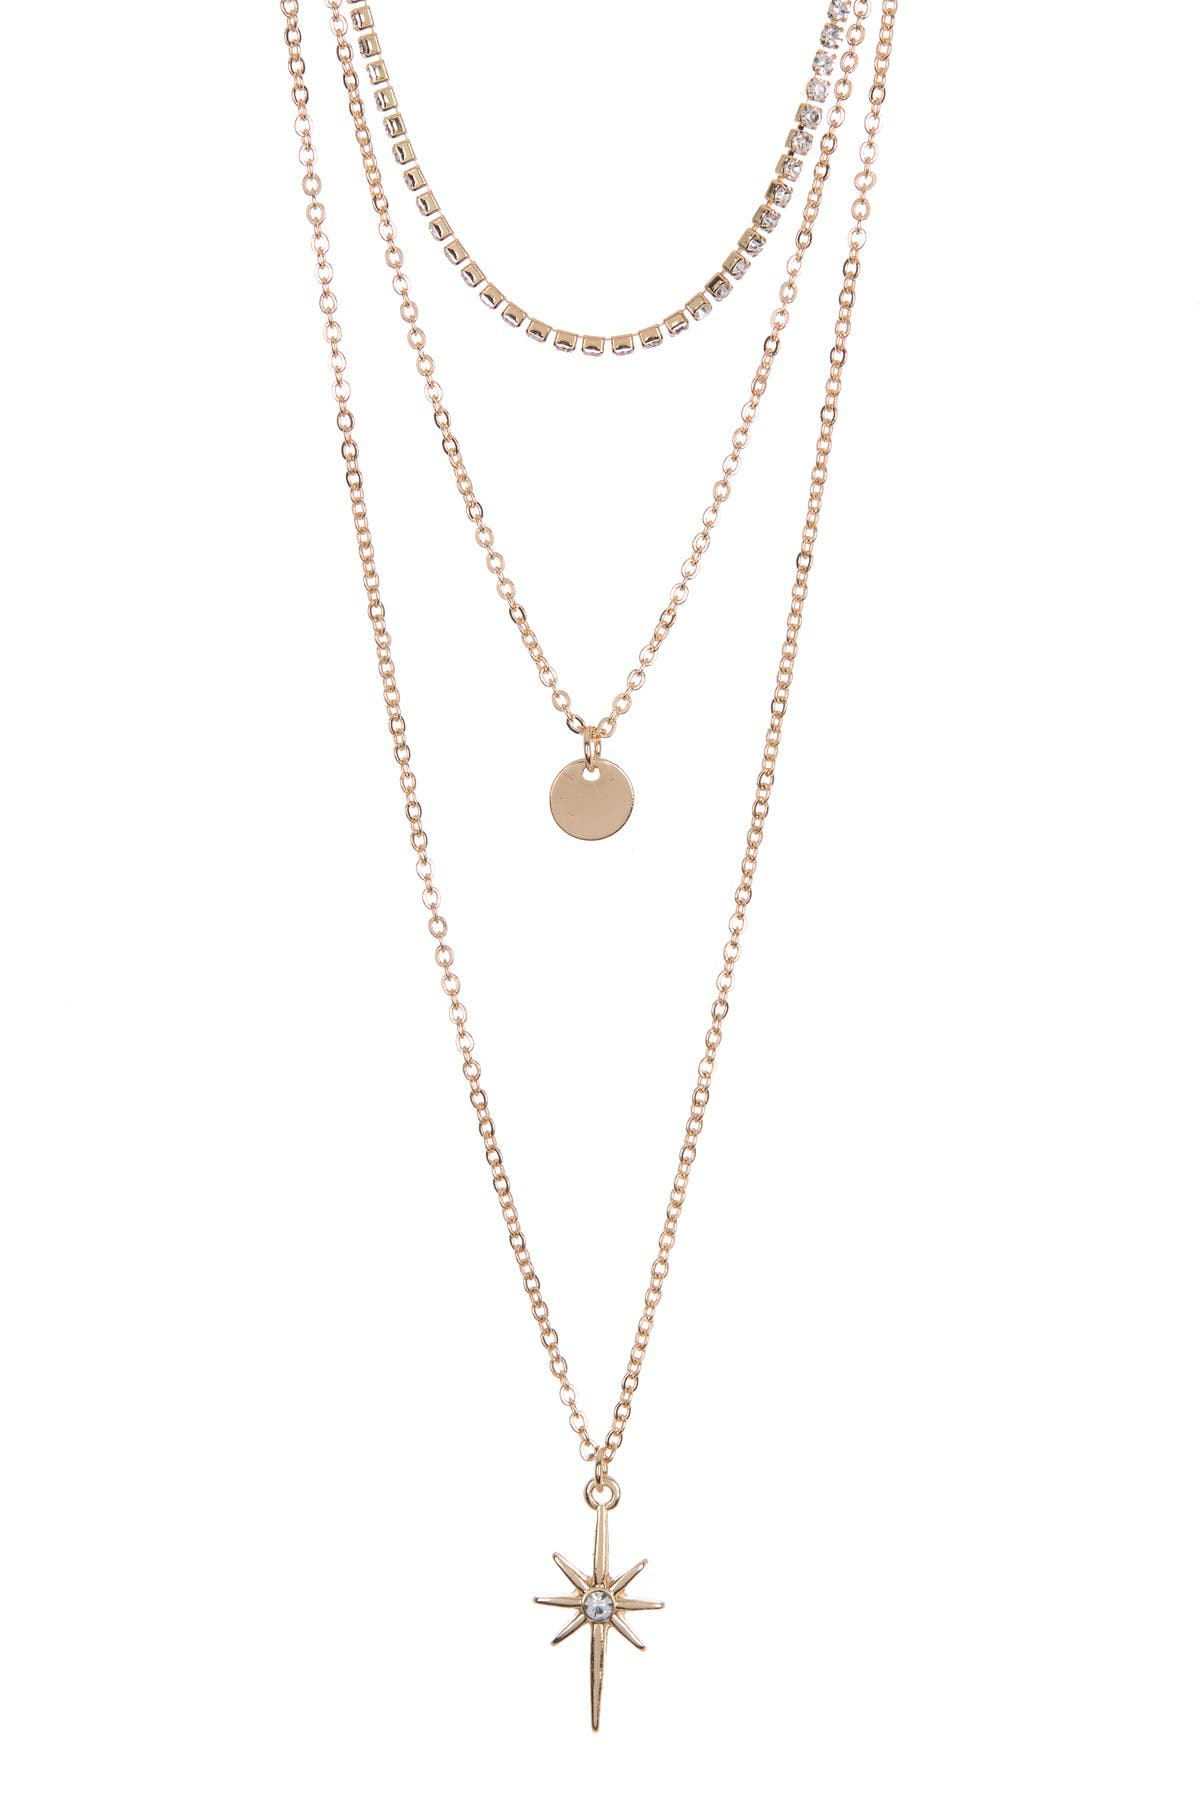 AREA STARS North Star Layered Necklace Set at Nordstrom Rack